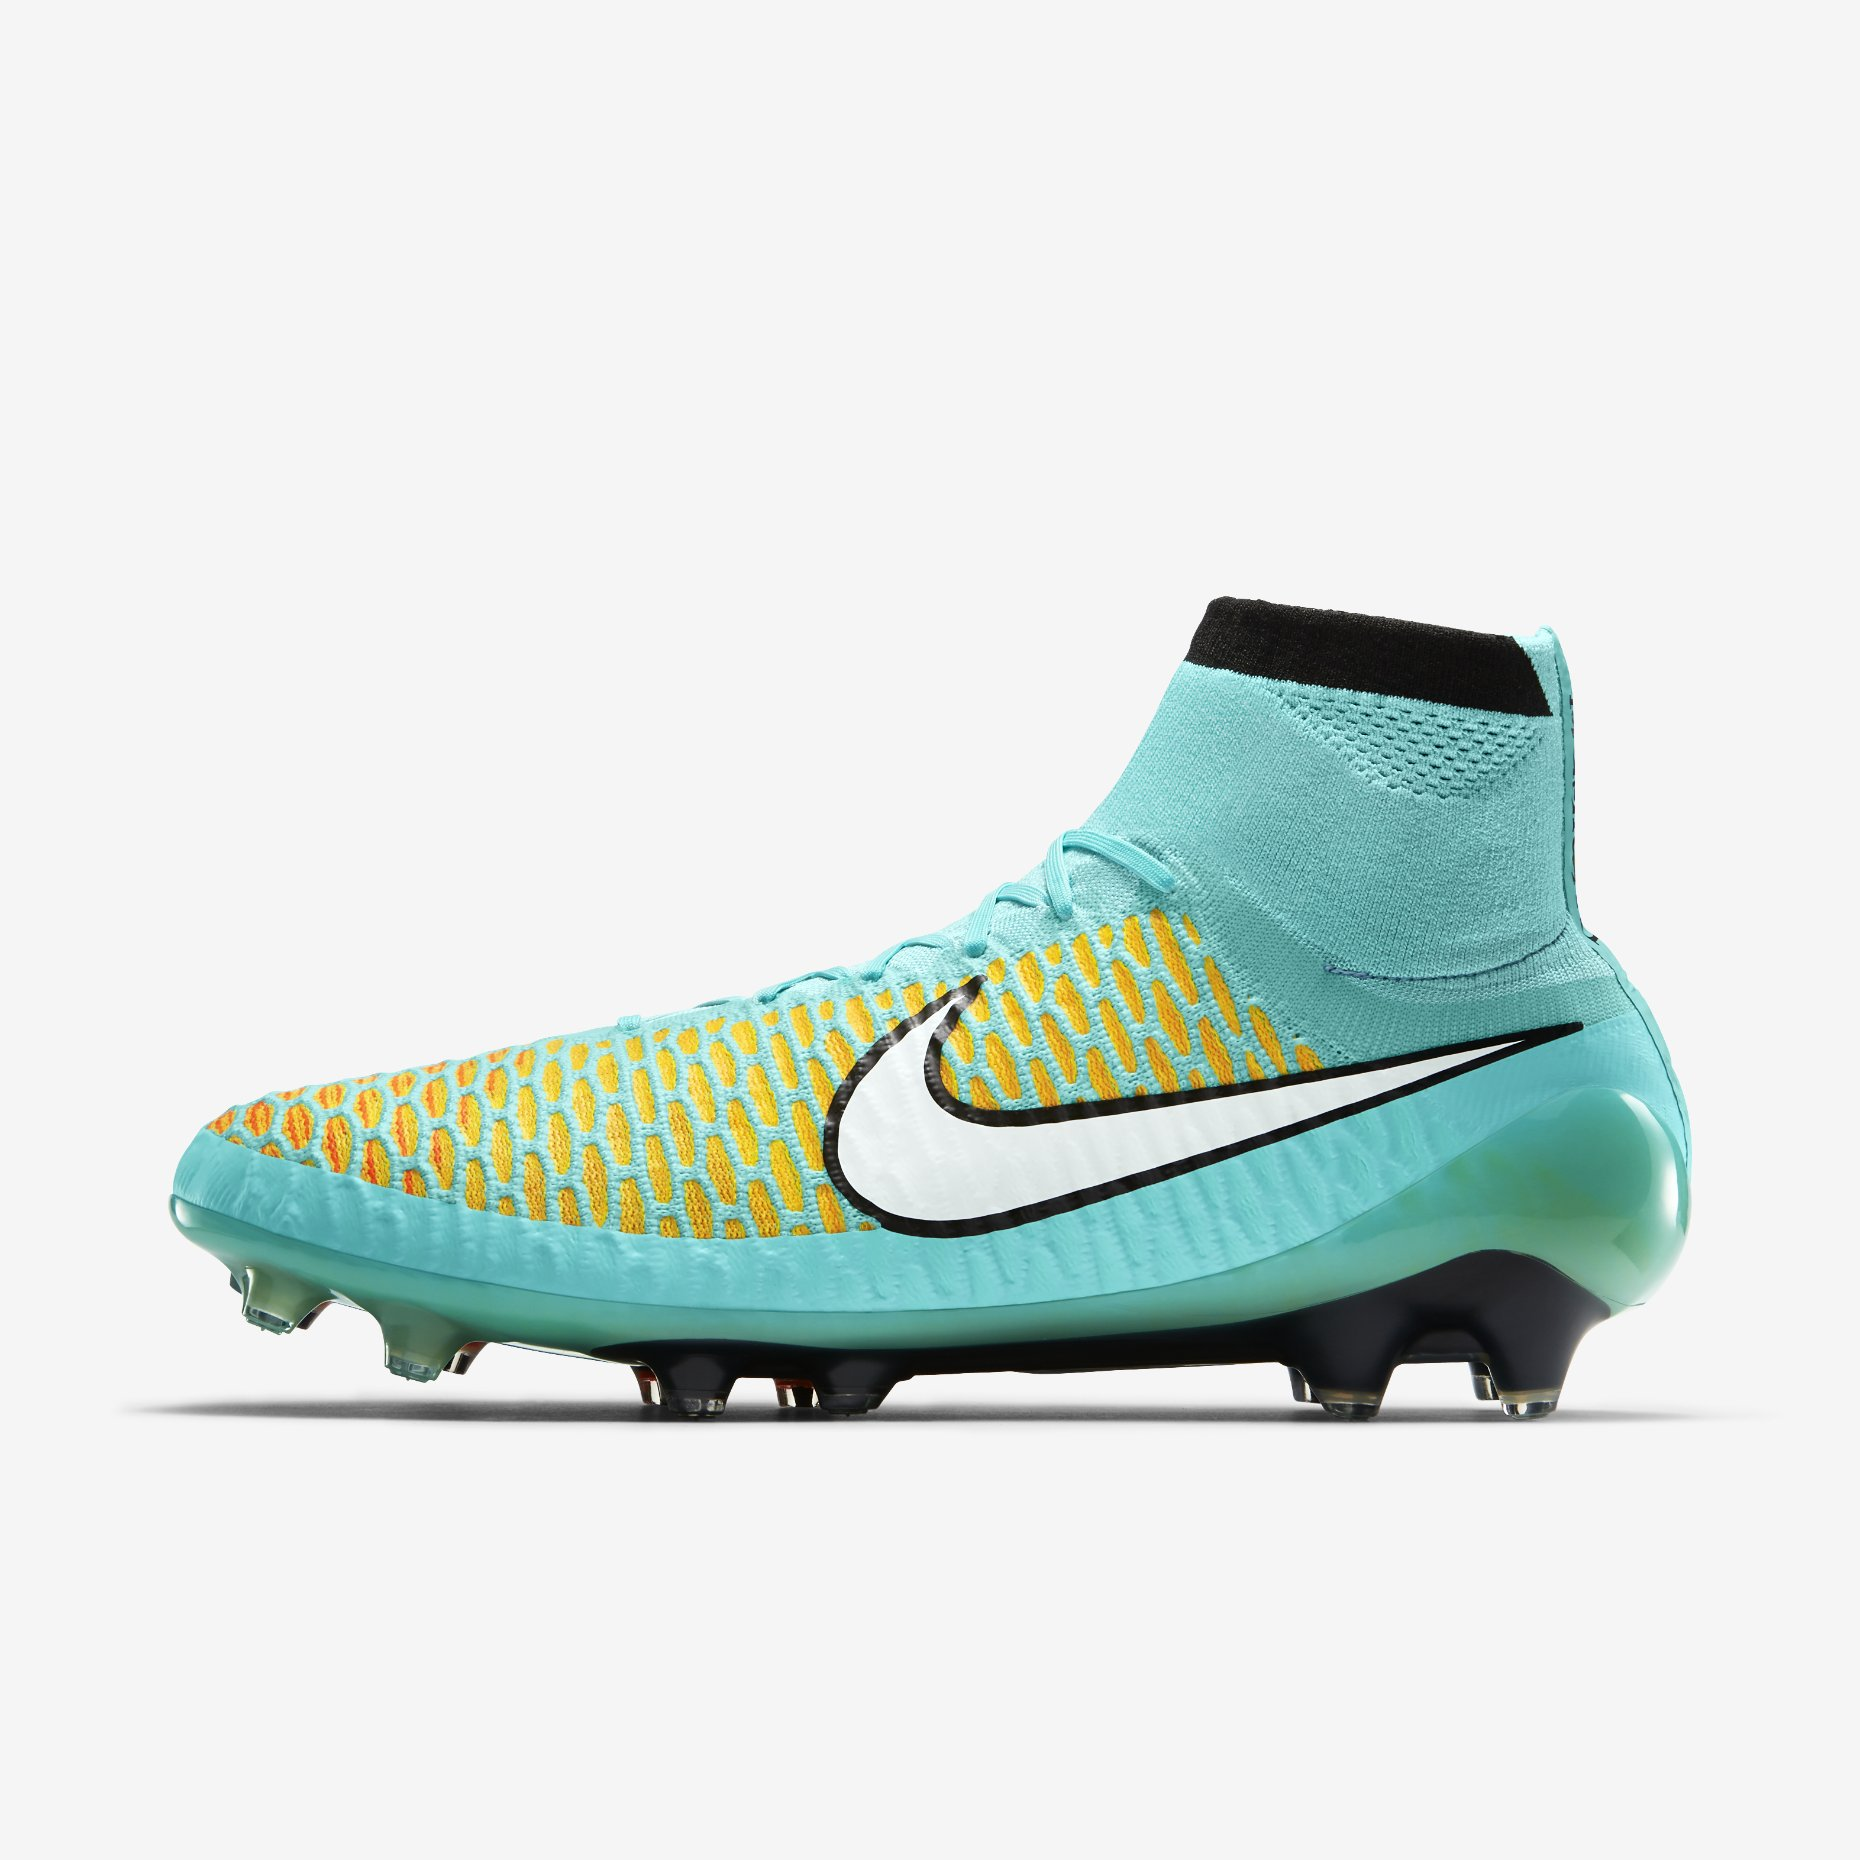 71d2e715a4e4 The new Nike Magista Obra Hyper Turquoise Soccer Cleat is mainly light blue  with the distinctive yellow   red honeycomb pattern on the upper.